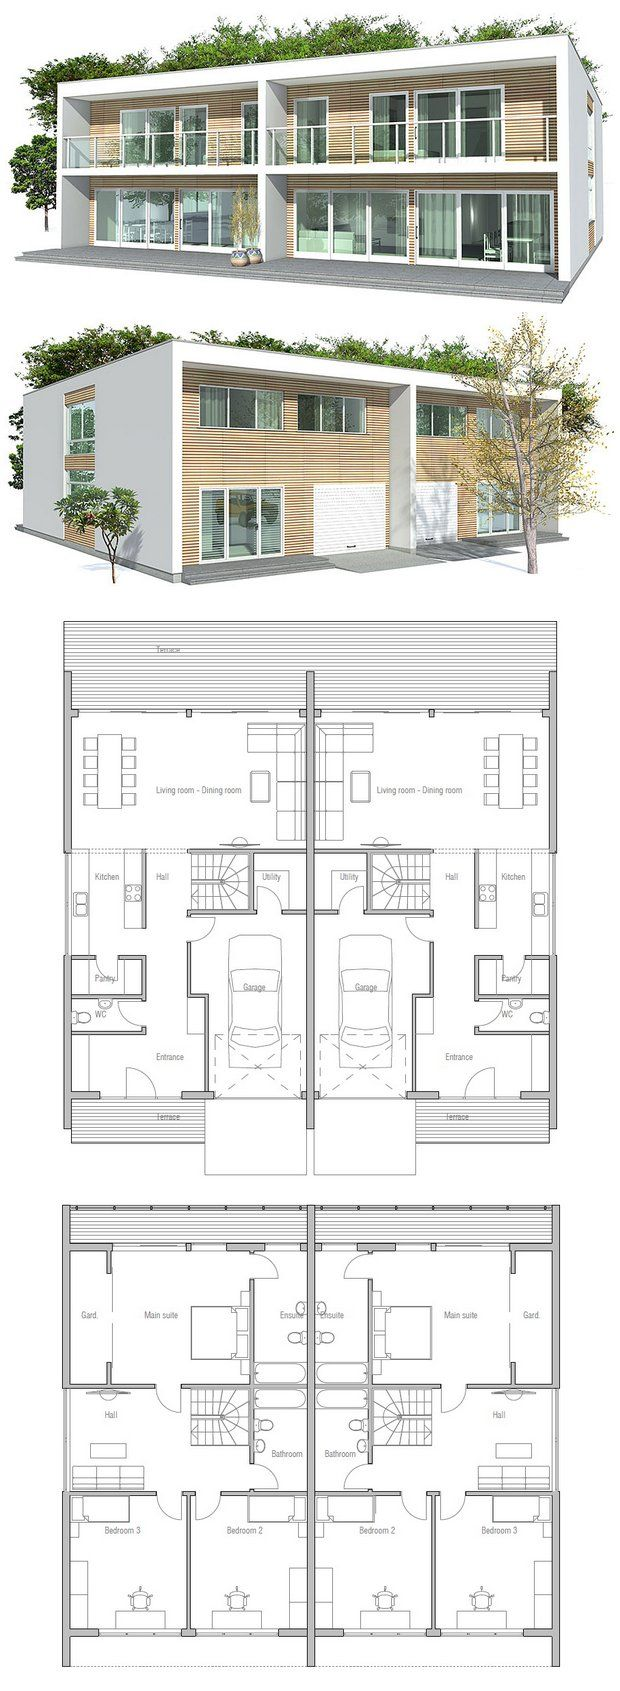 Duplex house on pinterest duplex house plans duplex for Back to back duplex house plans